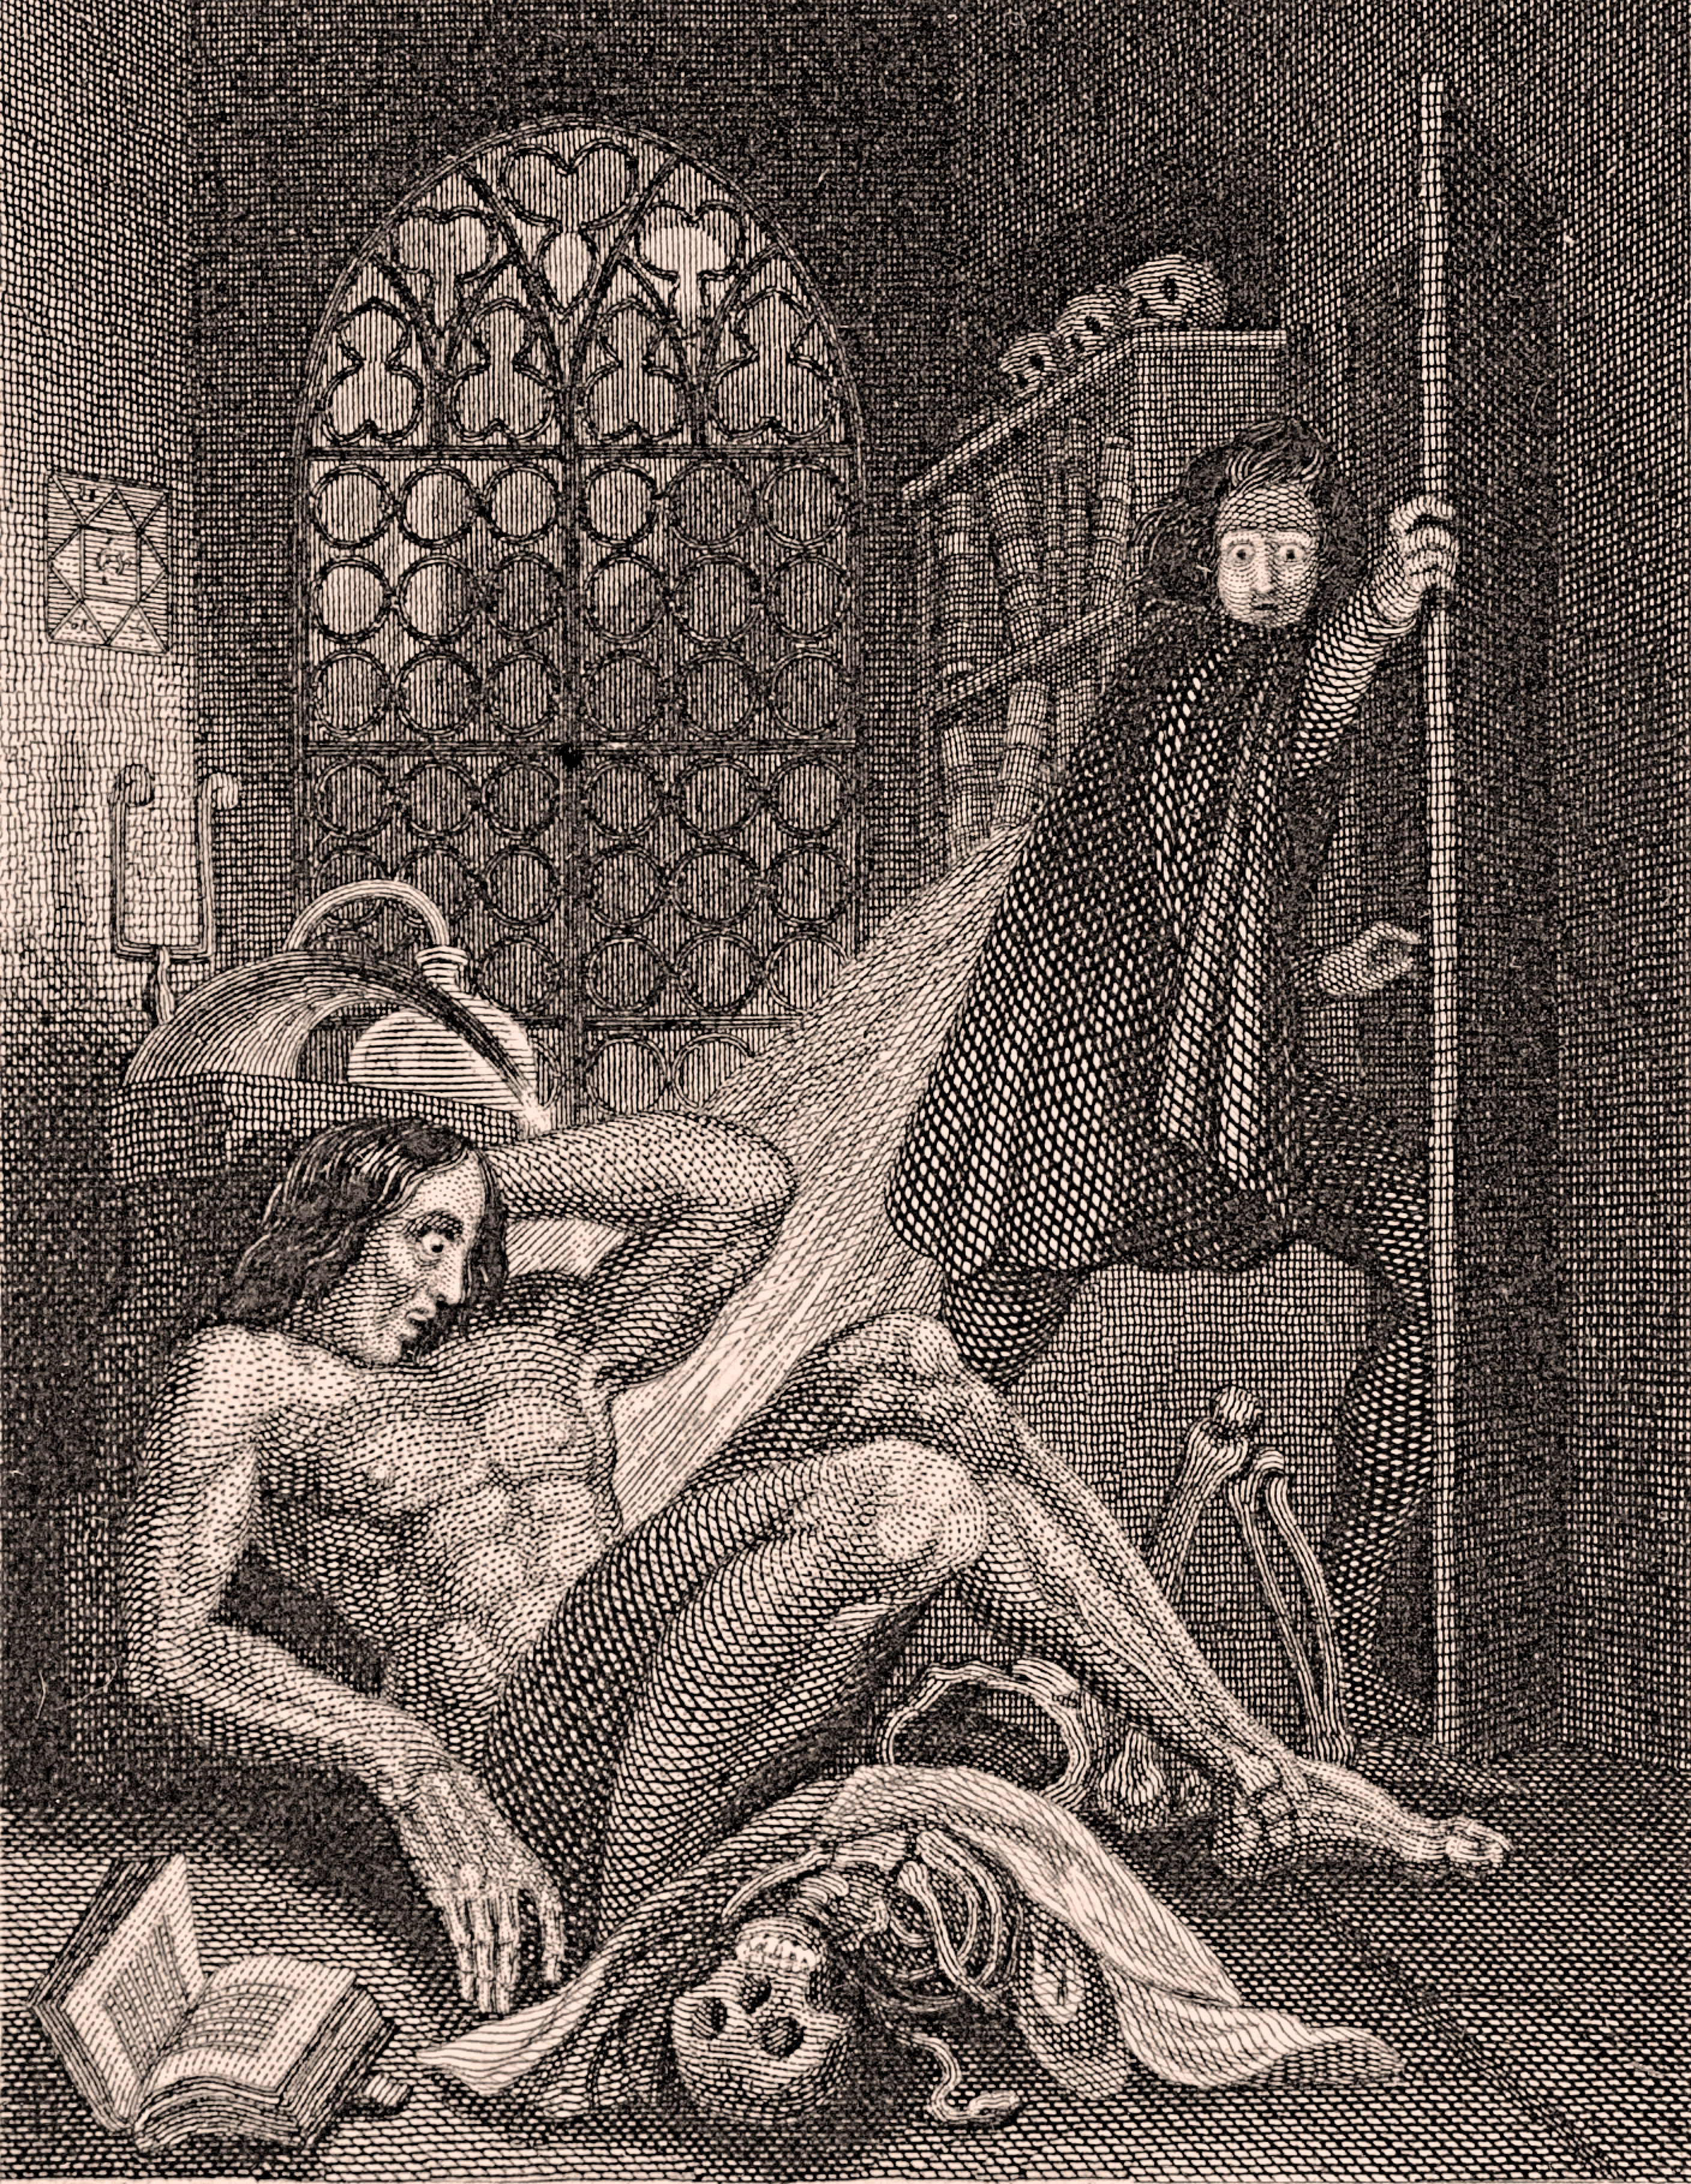 Frankenstein becomes disgusted by his monstrous creation